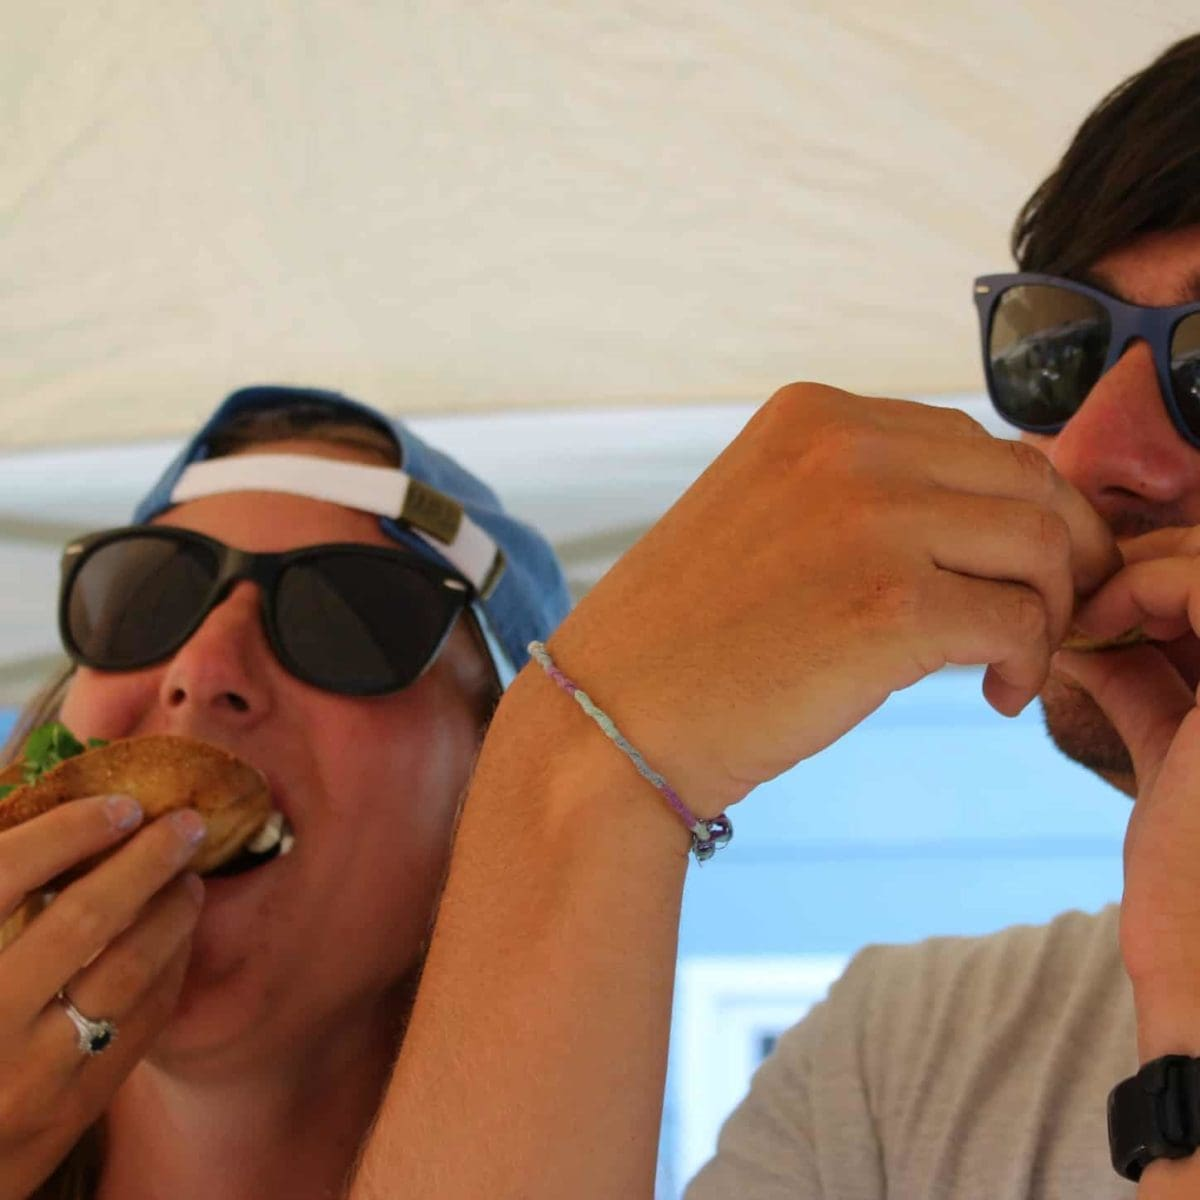 Man and woman with sunglasses eating tacos.